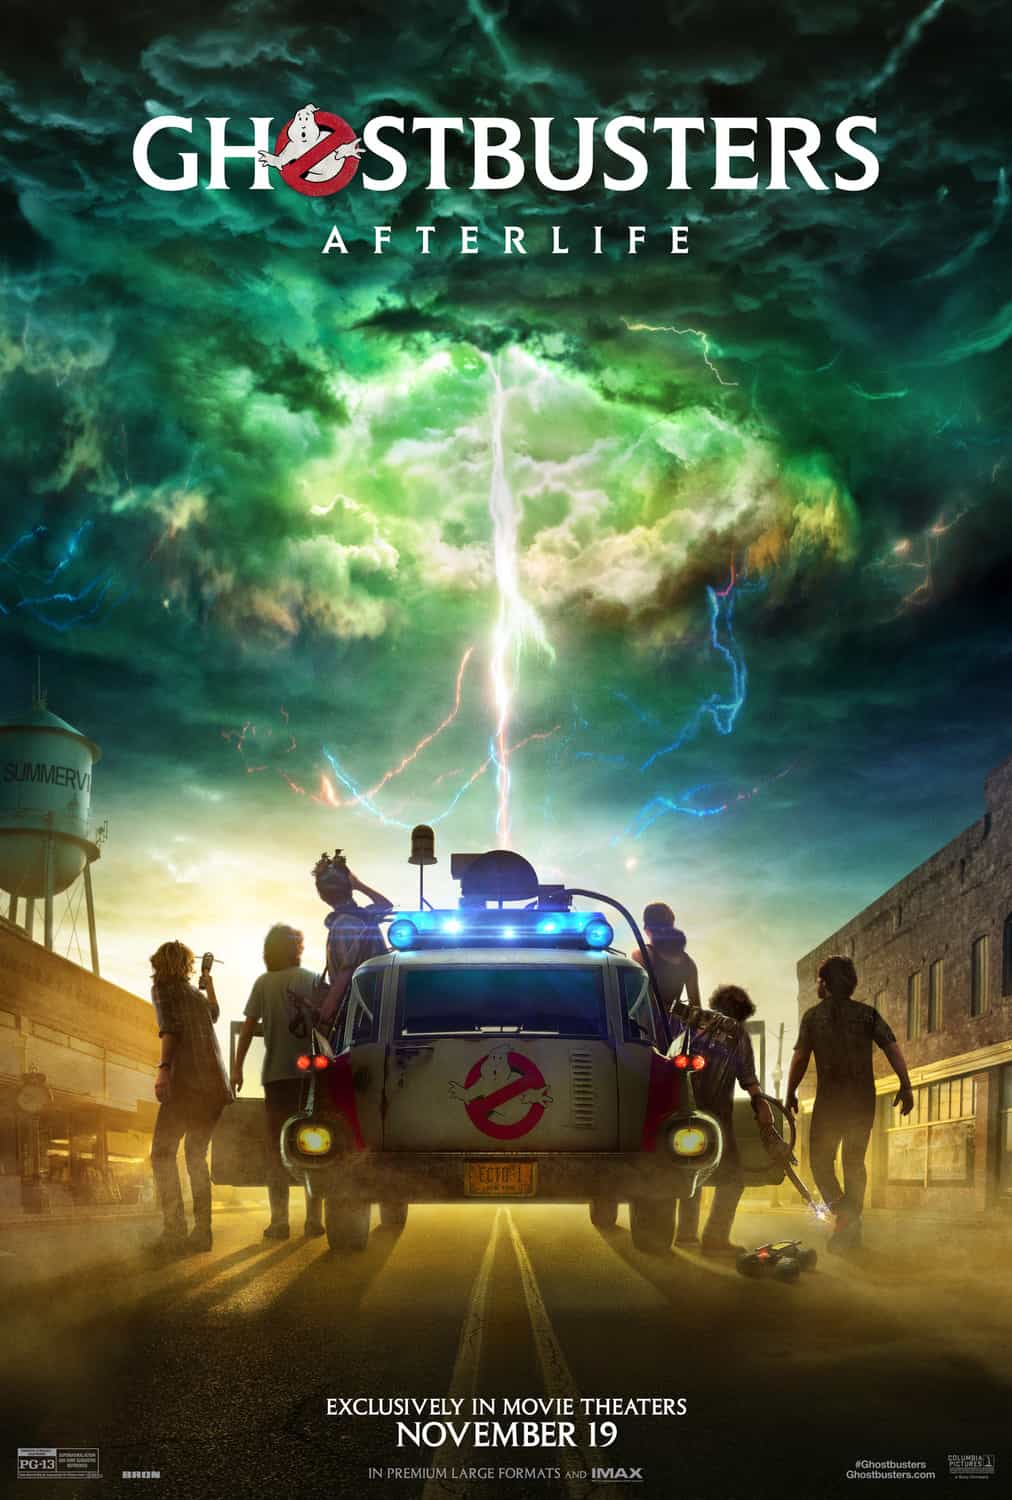 Ghostbusters: Afterlife to get first trailer next Monday, December 9th